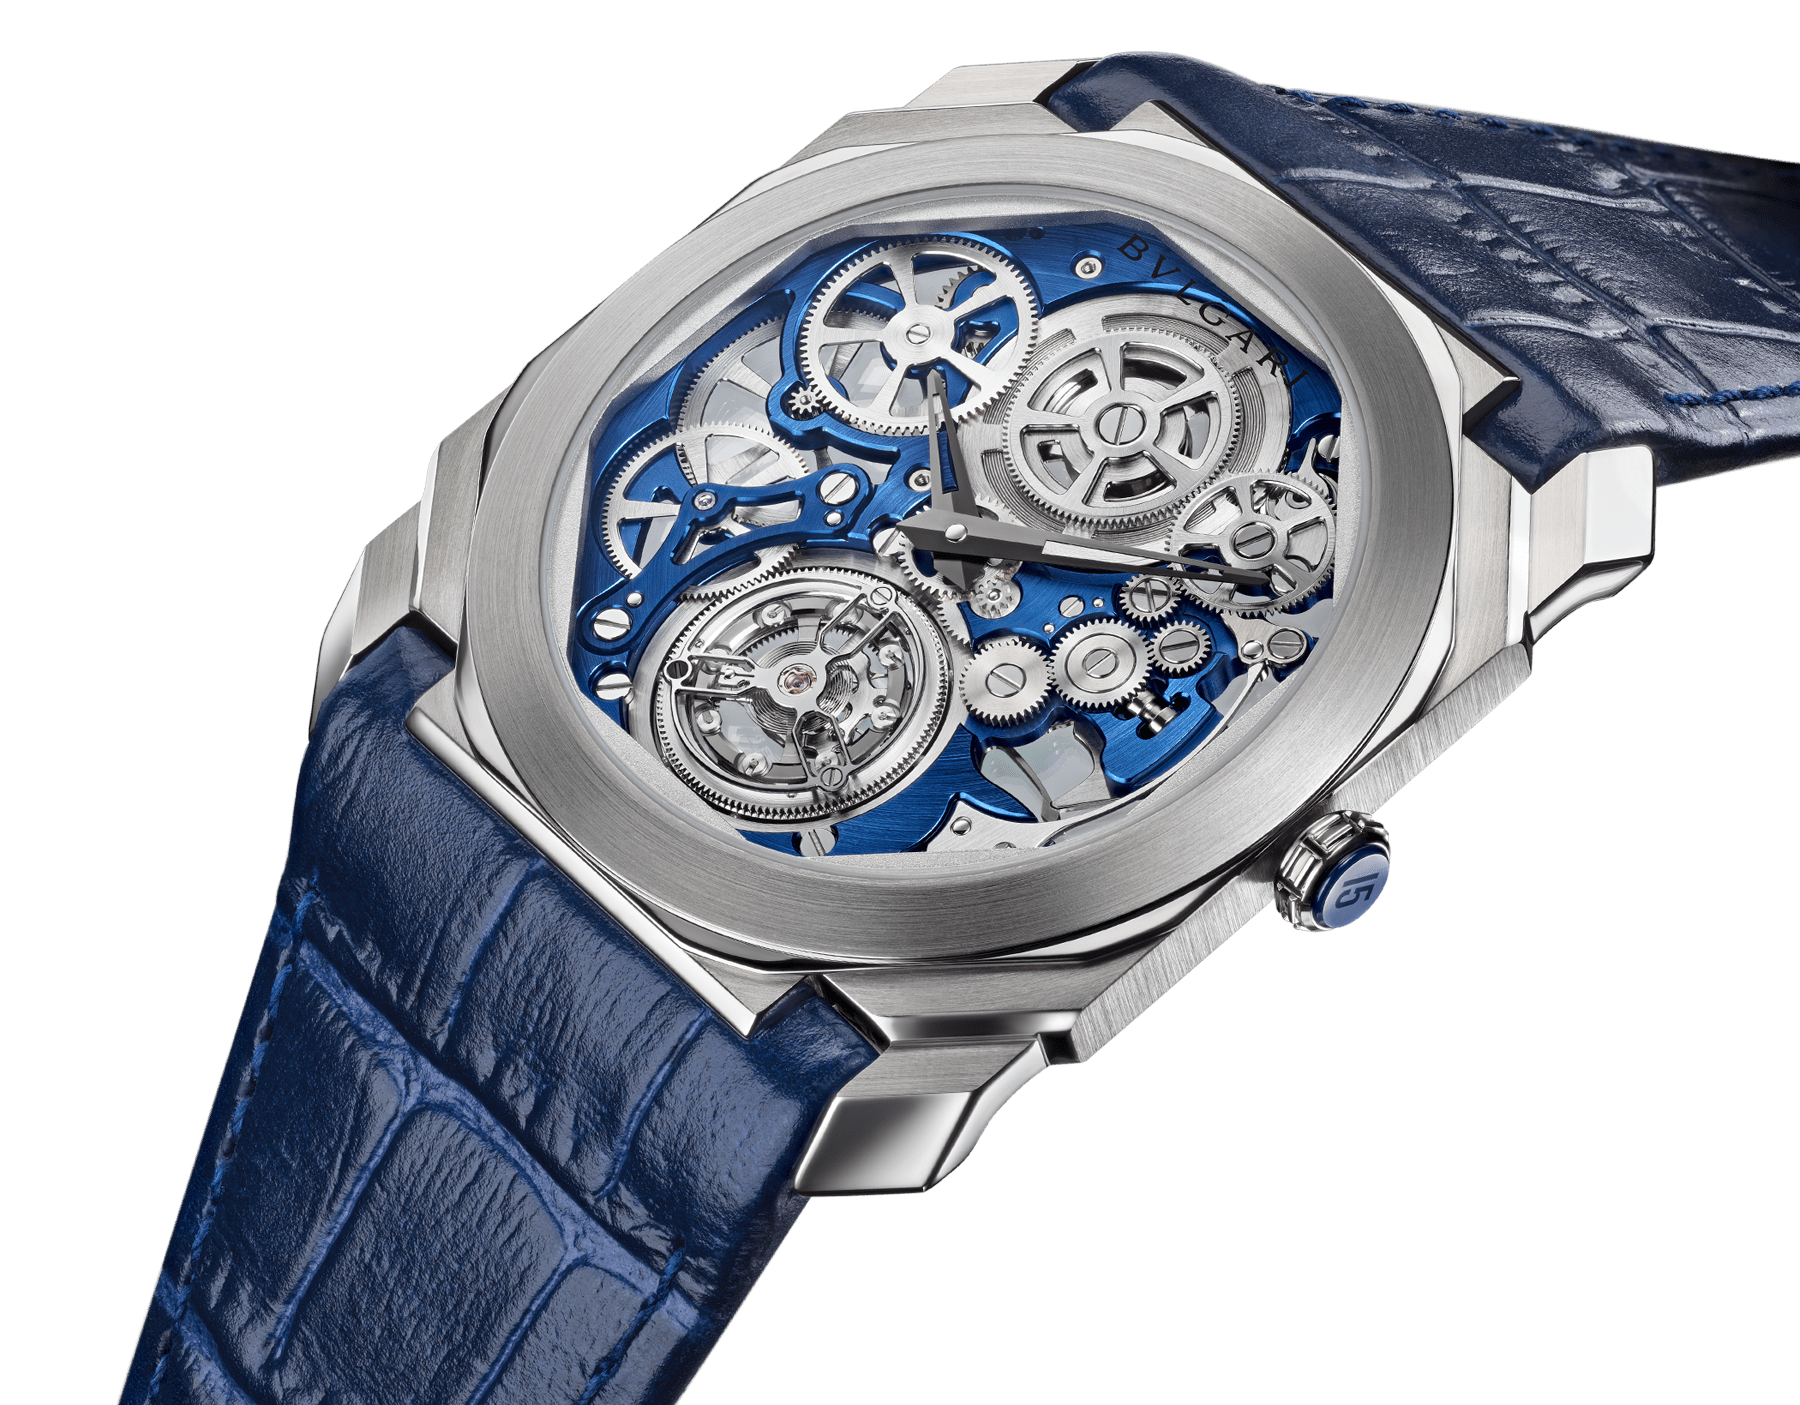 Octo Finissimo Tourbillon Skeleton watch with extra-thin mechanical movement with manual winding and flying tourbillon, 40 mm platinum case with transparent case back, platinum crown with blue ceramic insert, blue skeletonized caliber, blue alligator bracelet and platinum ardillon buckle 103188 image 2